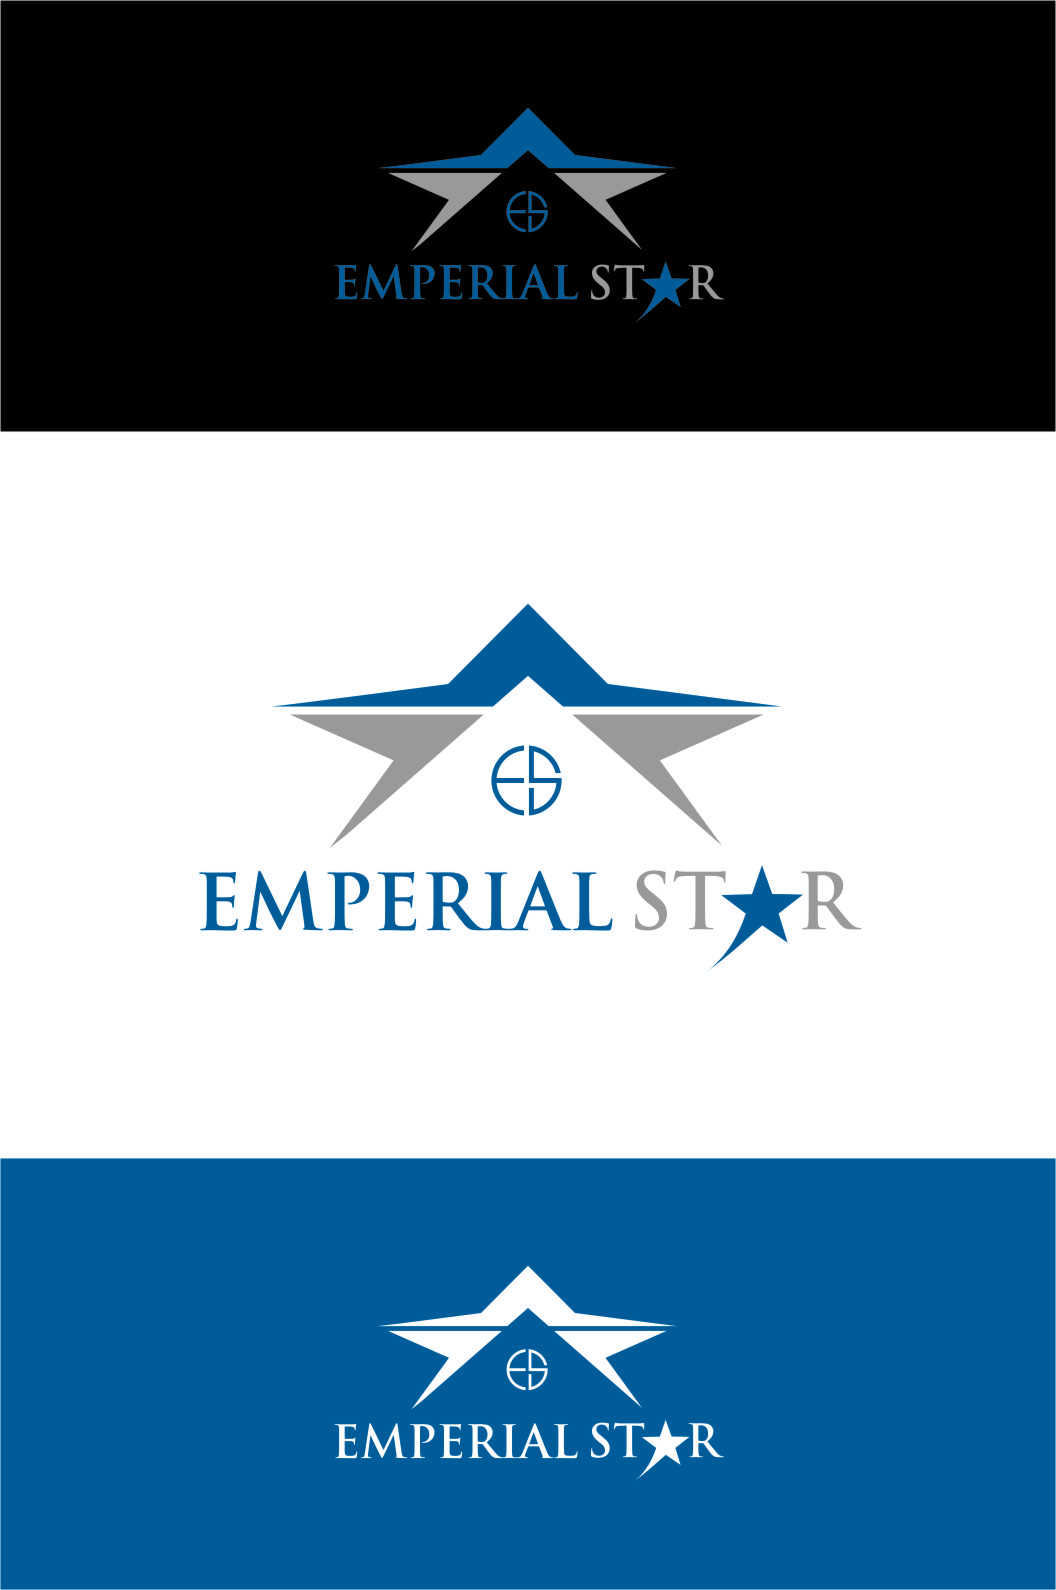 Logo Design by RasYa Muhammad Athaya - Entry No. 146 in the Logo Design Contest Emperial Star Logo Design.